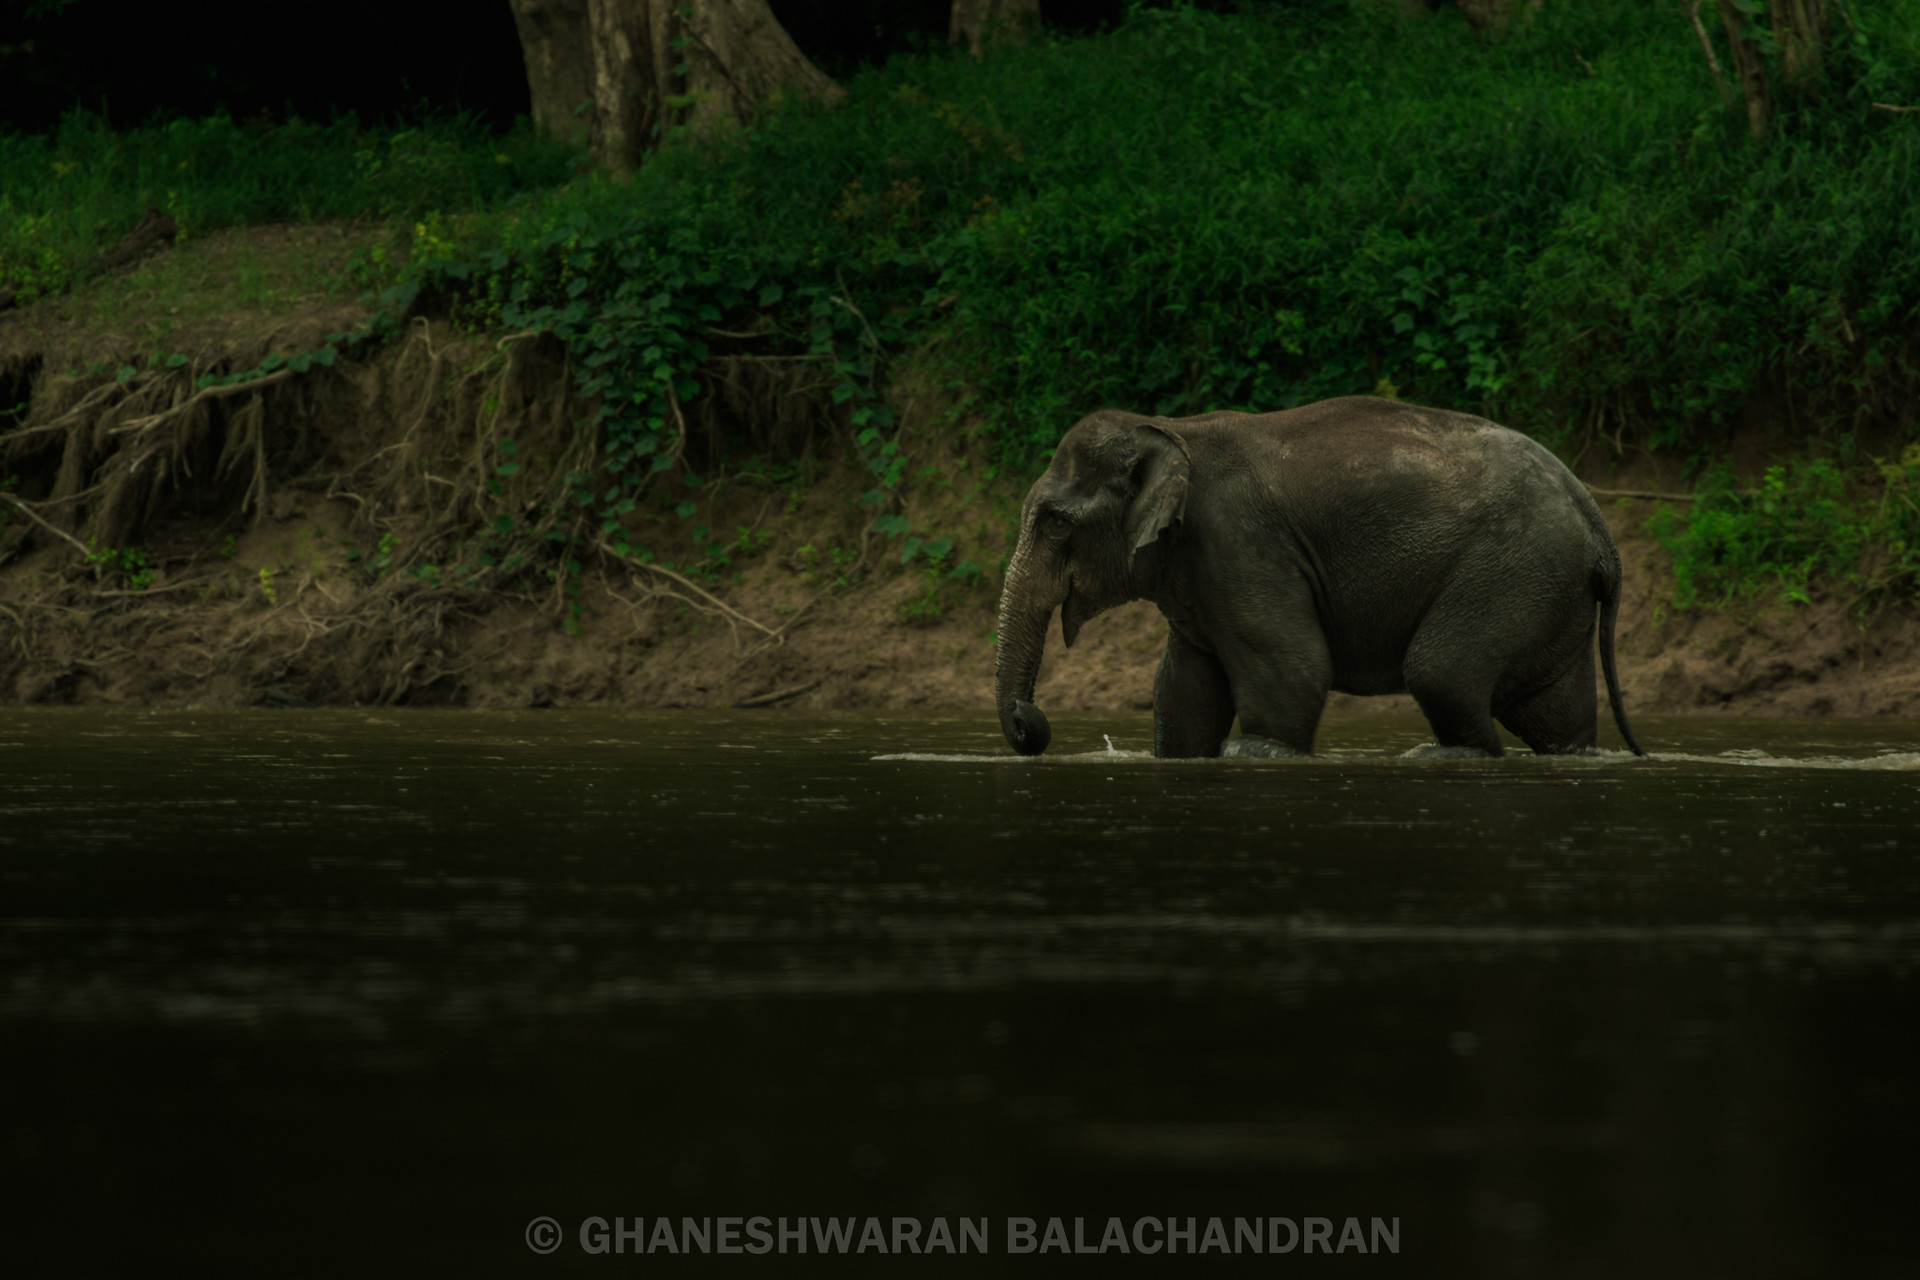 One member of a herd of elephants crossing the river